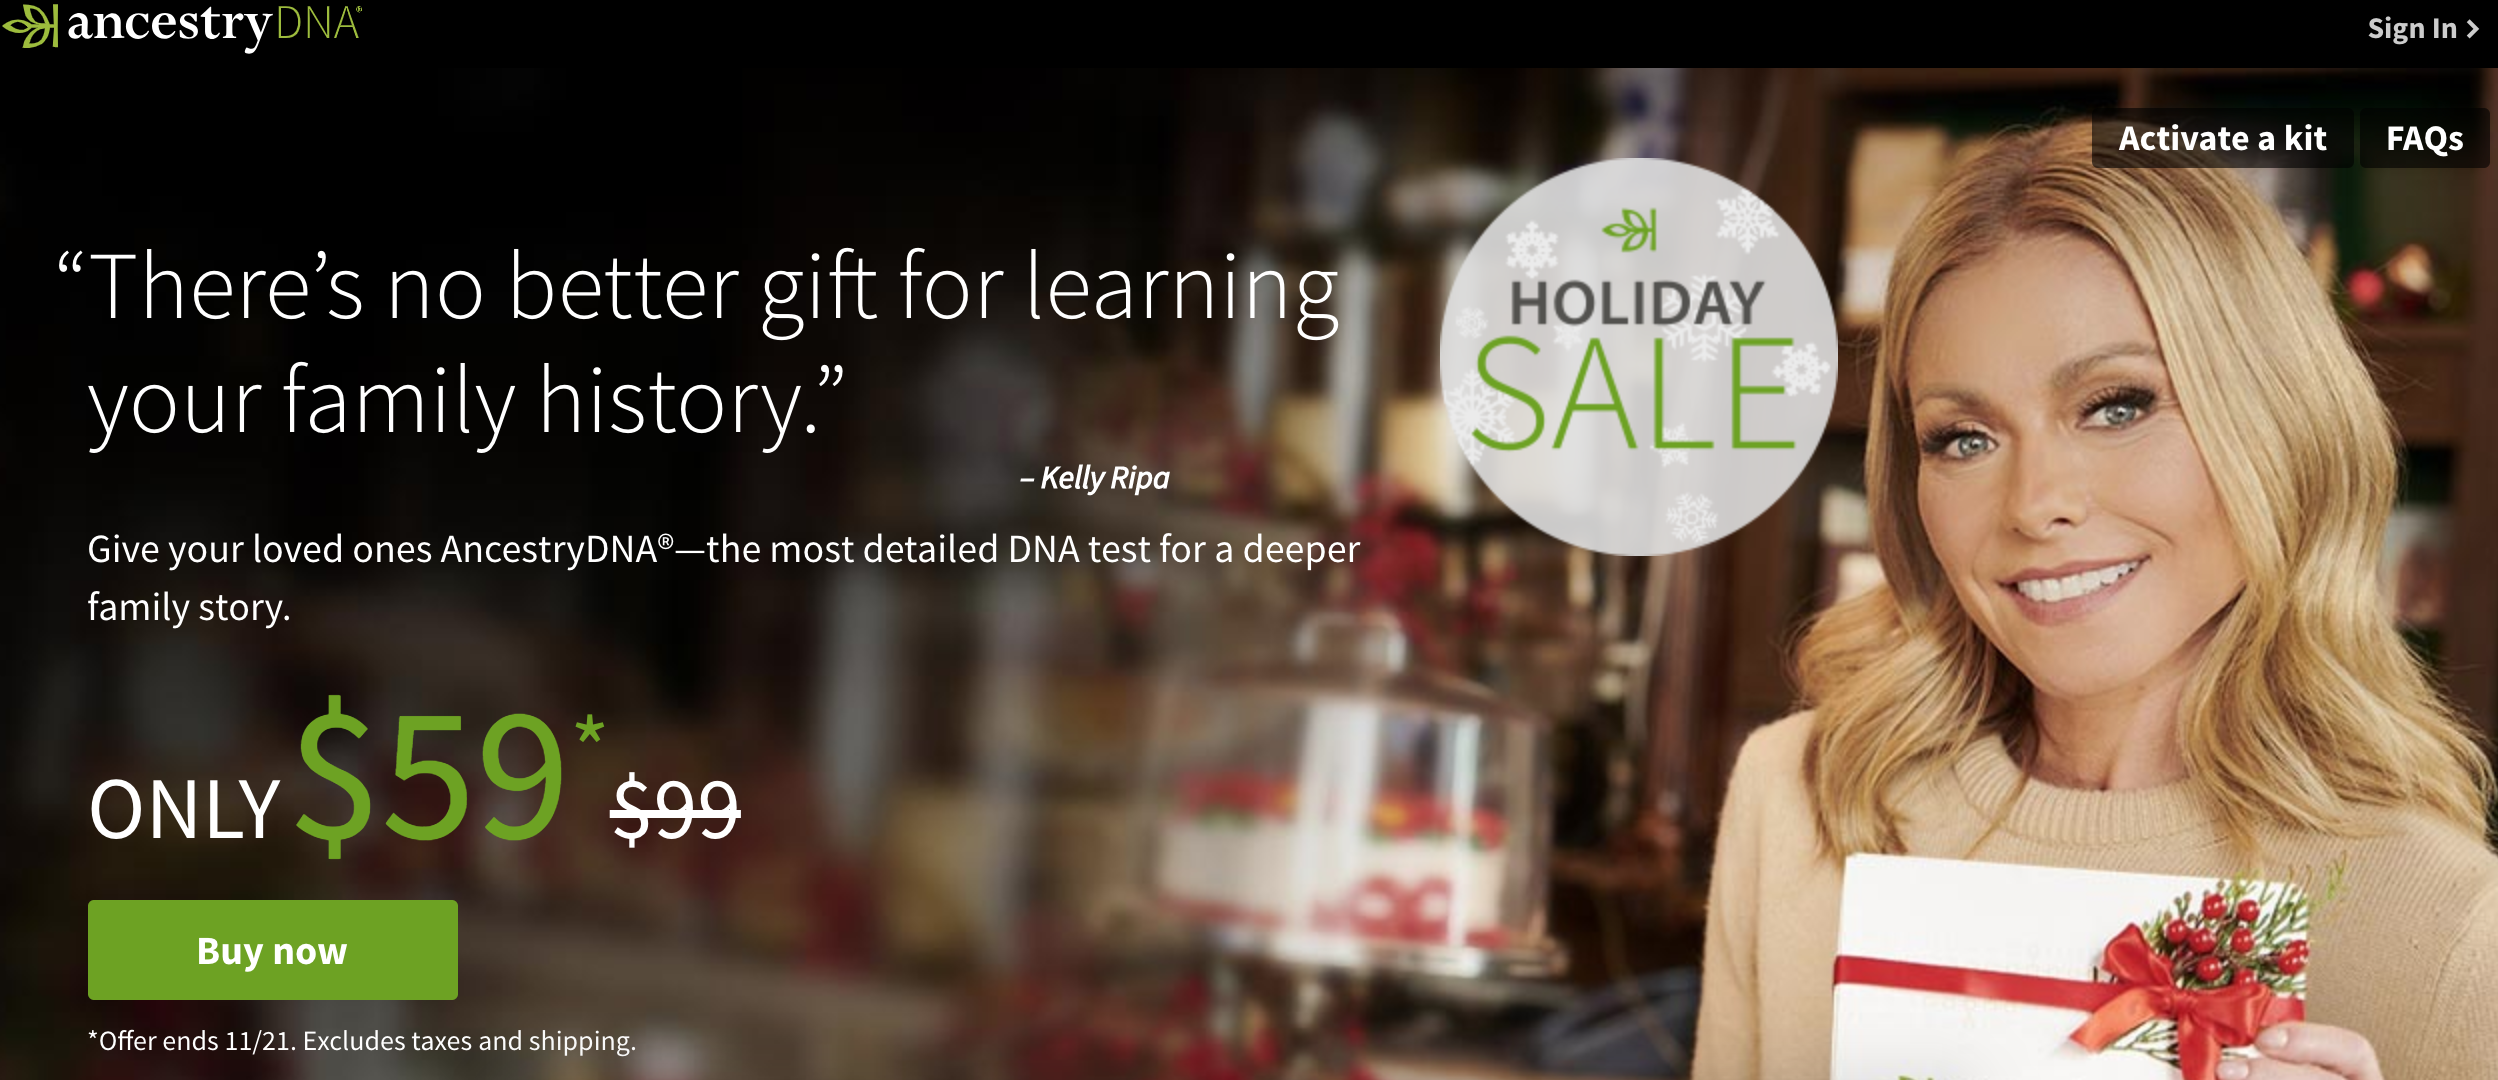 AncestryDNA framing their service as a great gift for the family. Promo ends the day before Thanksgiving 2018.